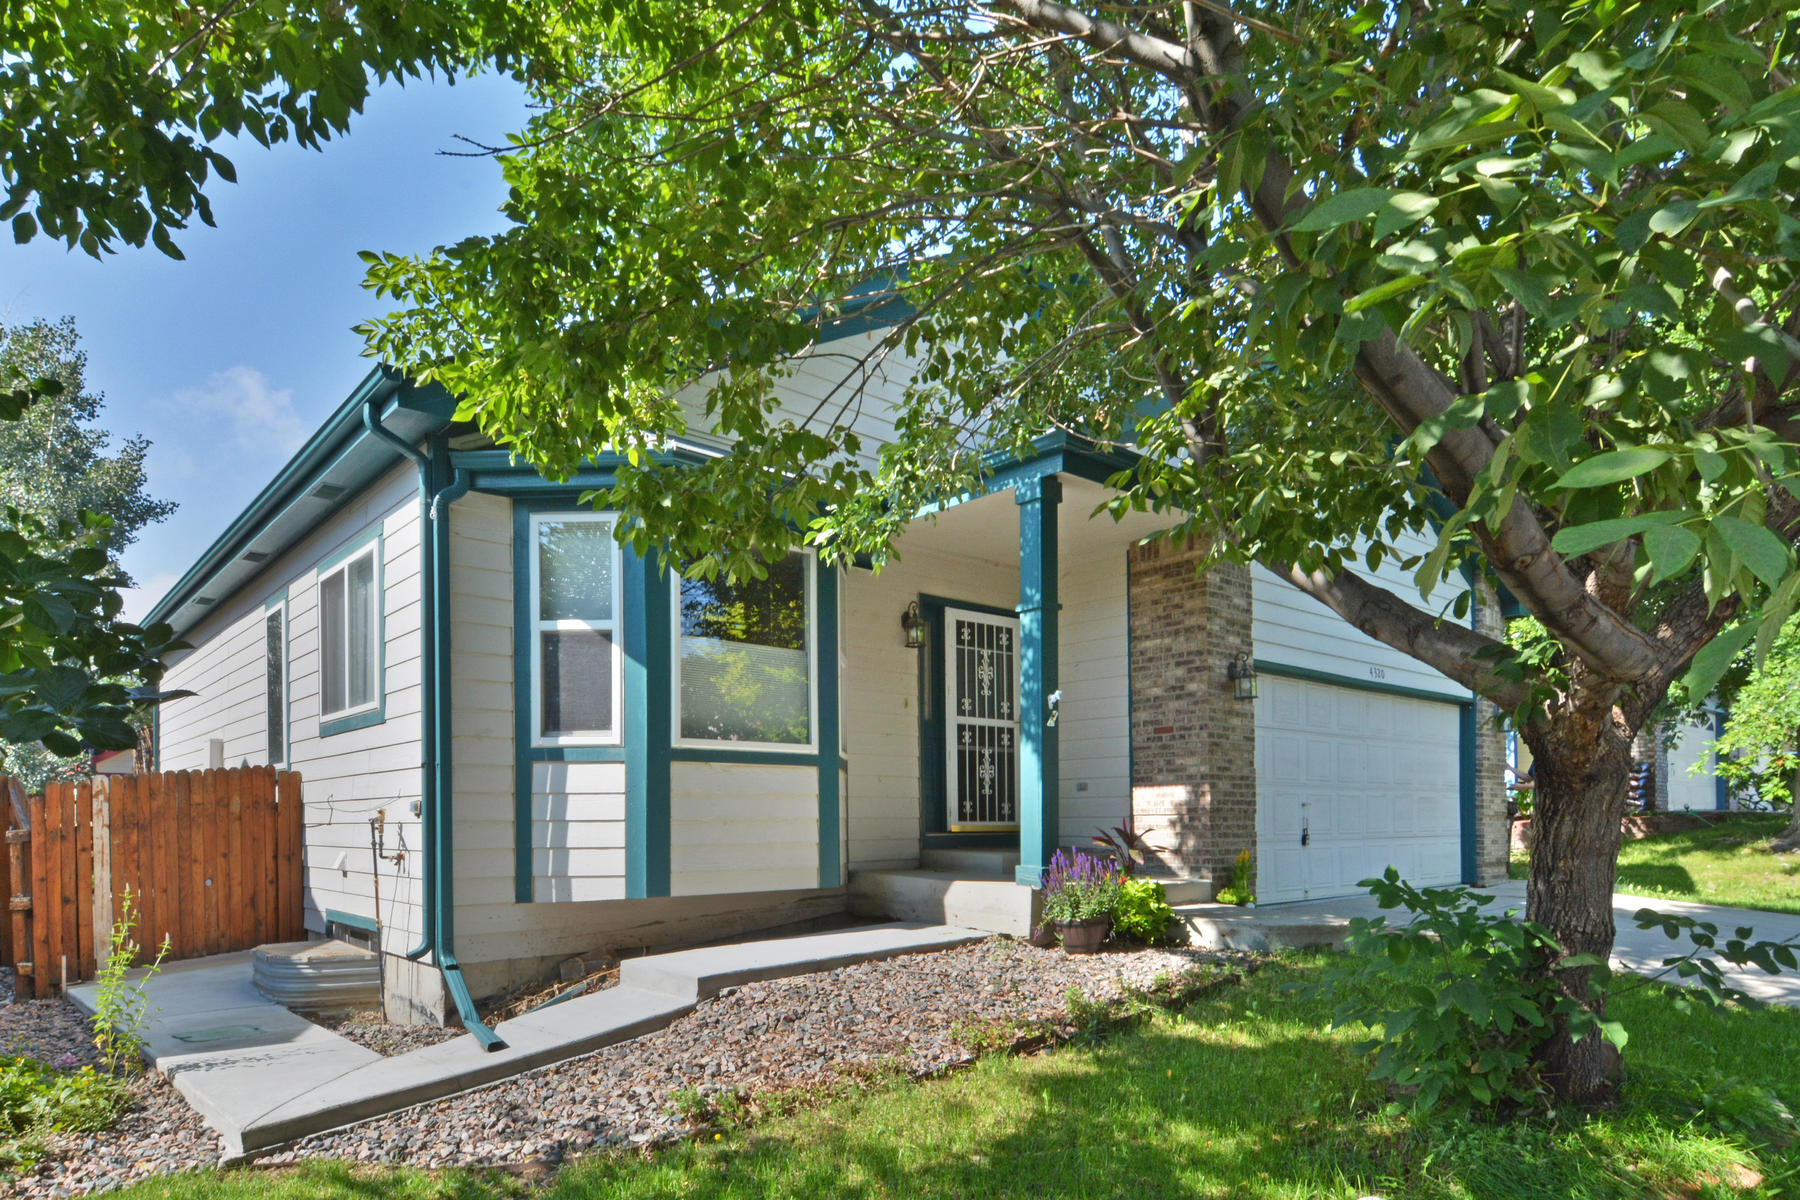 Single Family Home for Sale at Lovely Brandywine Home 4320 Snowbird Ave Broomfield, Colorado 80020 United States